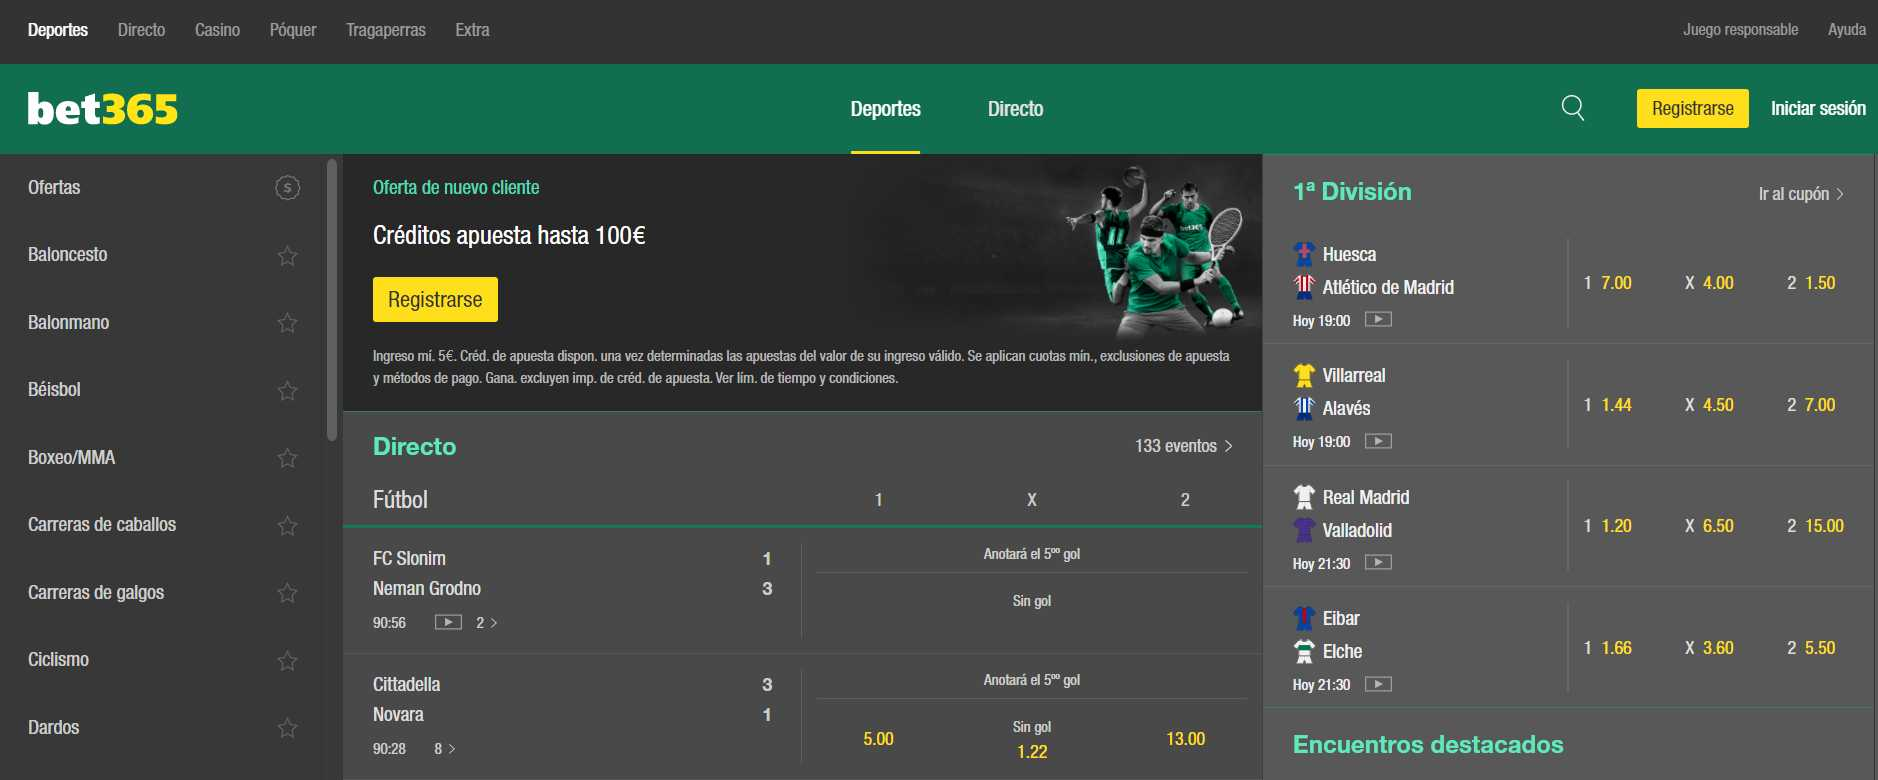 What can be done with the mobile Bet365 applications?